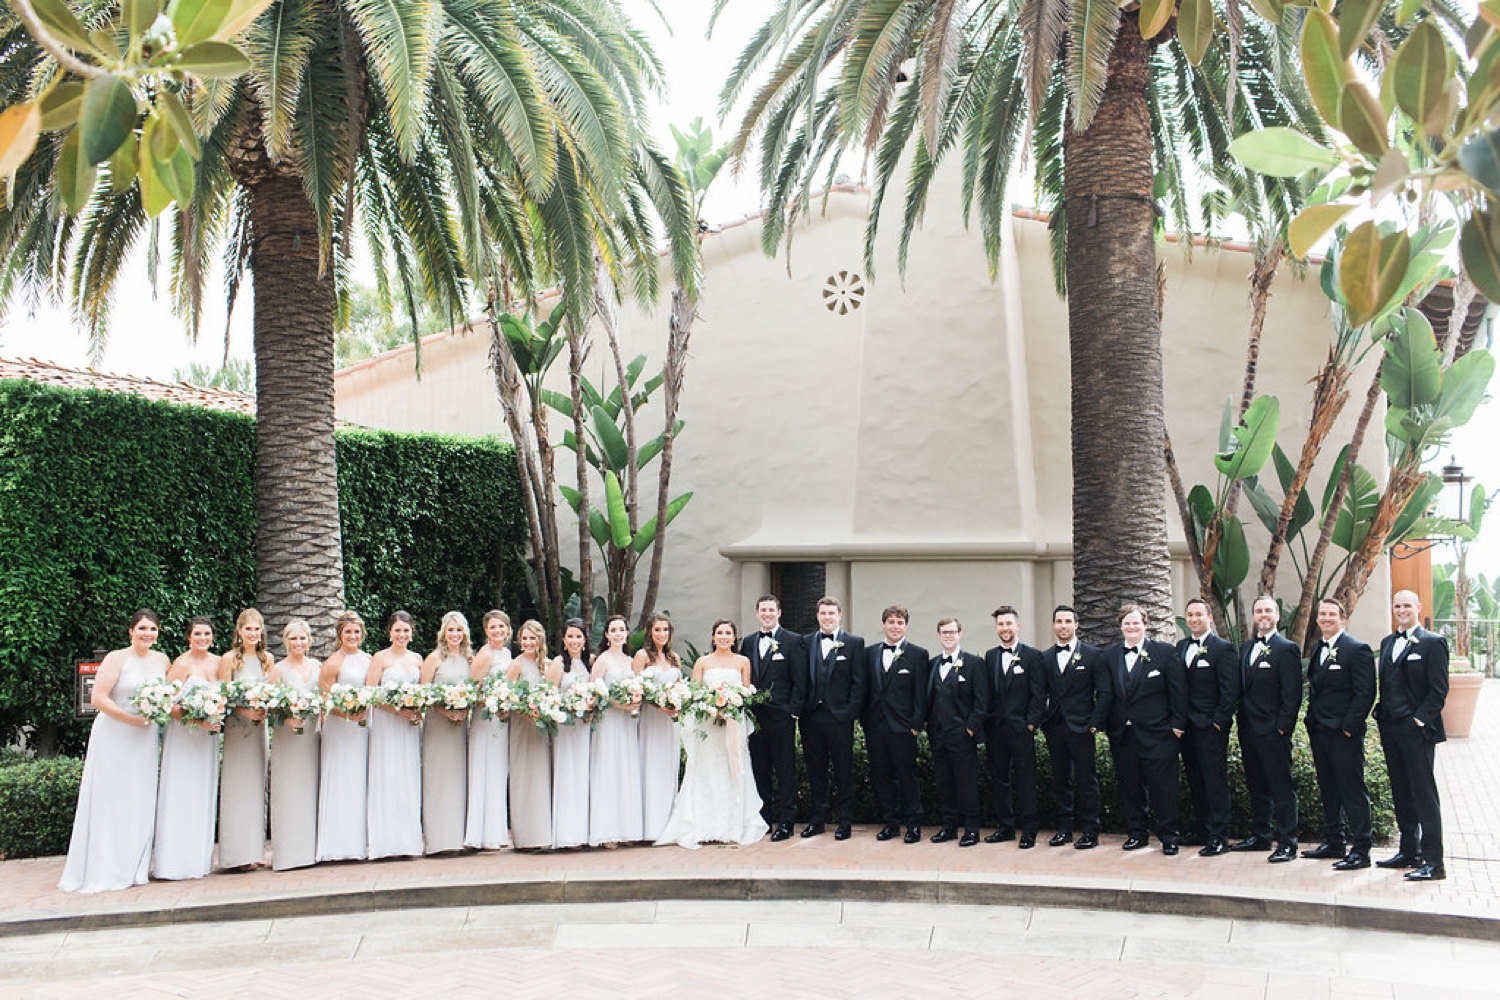 LVL Weddings and Events Pelican Hill